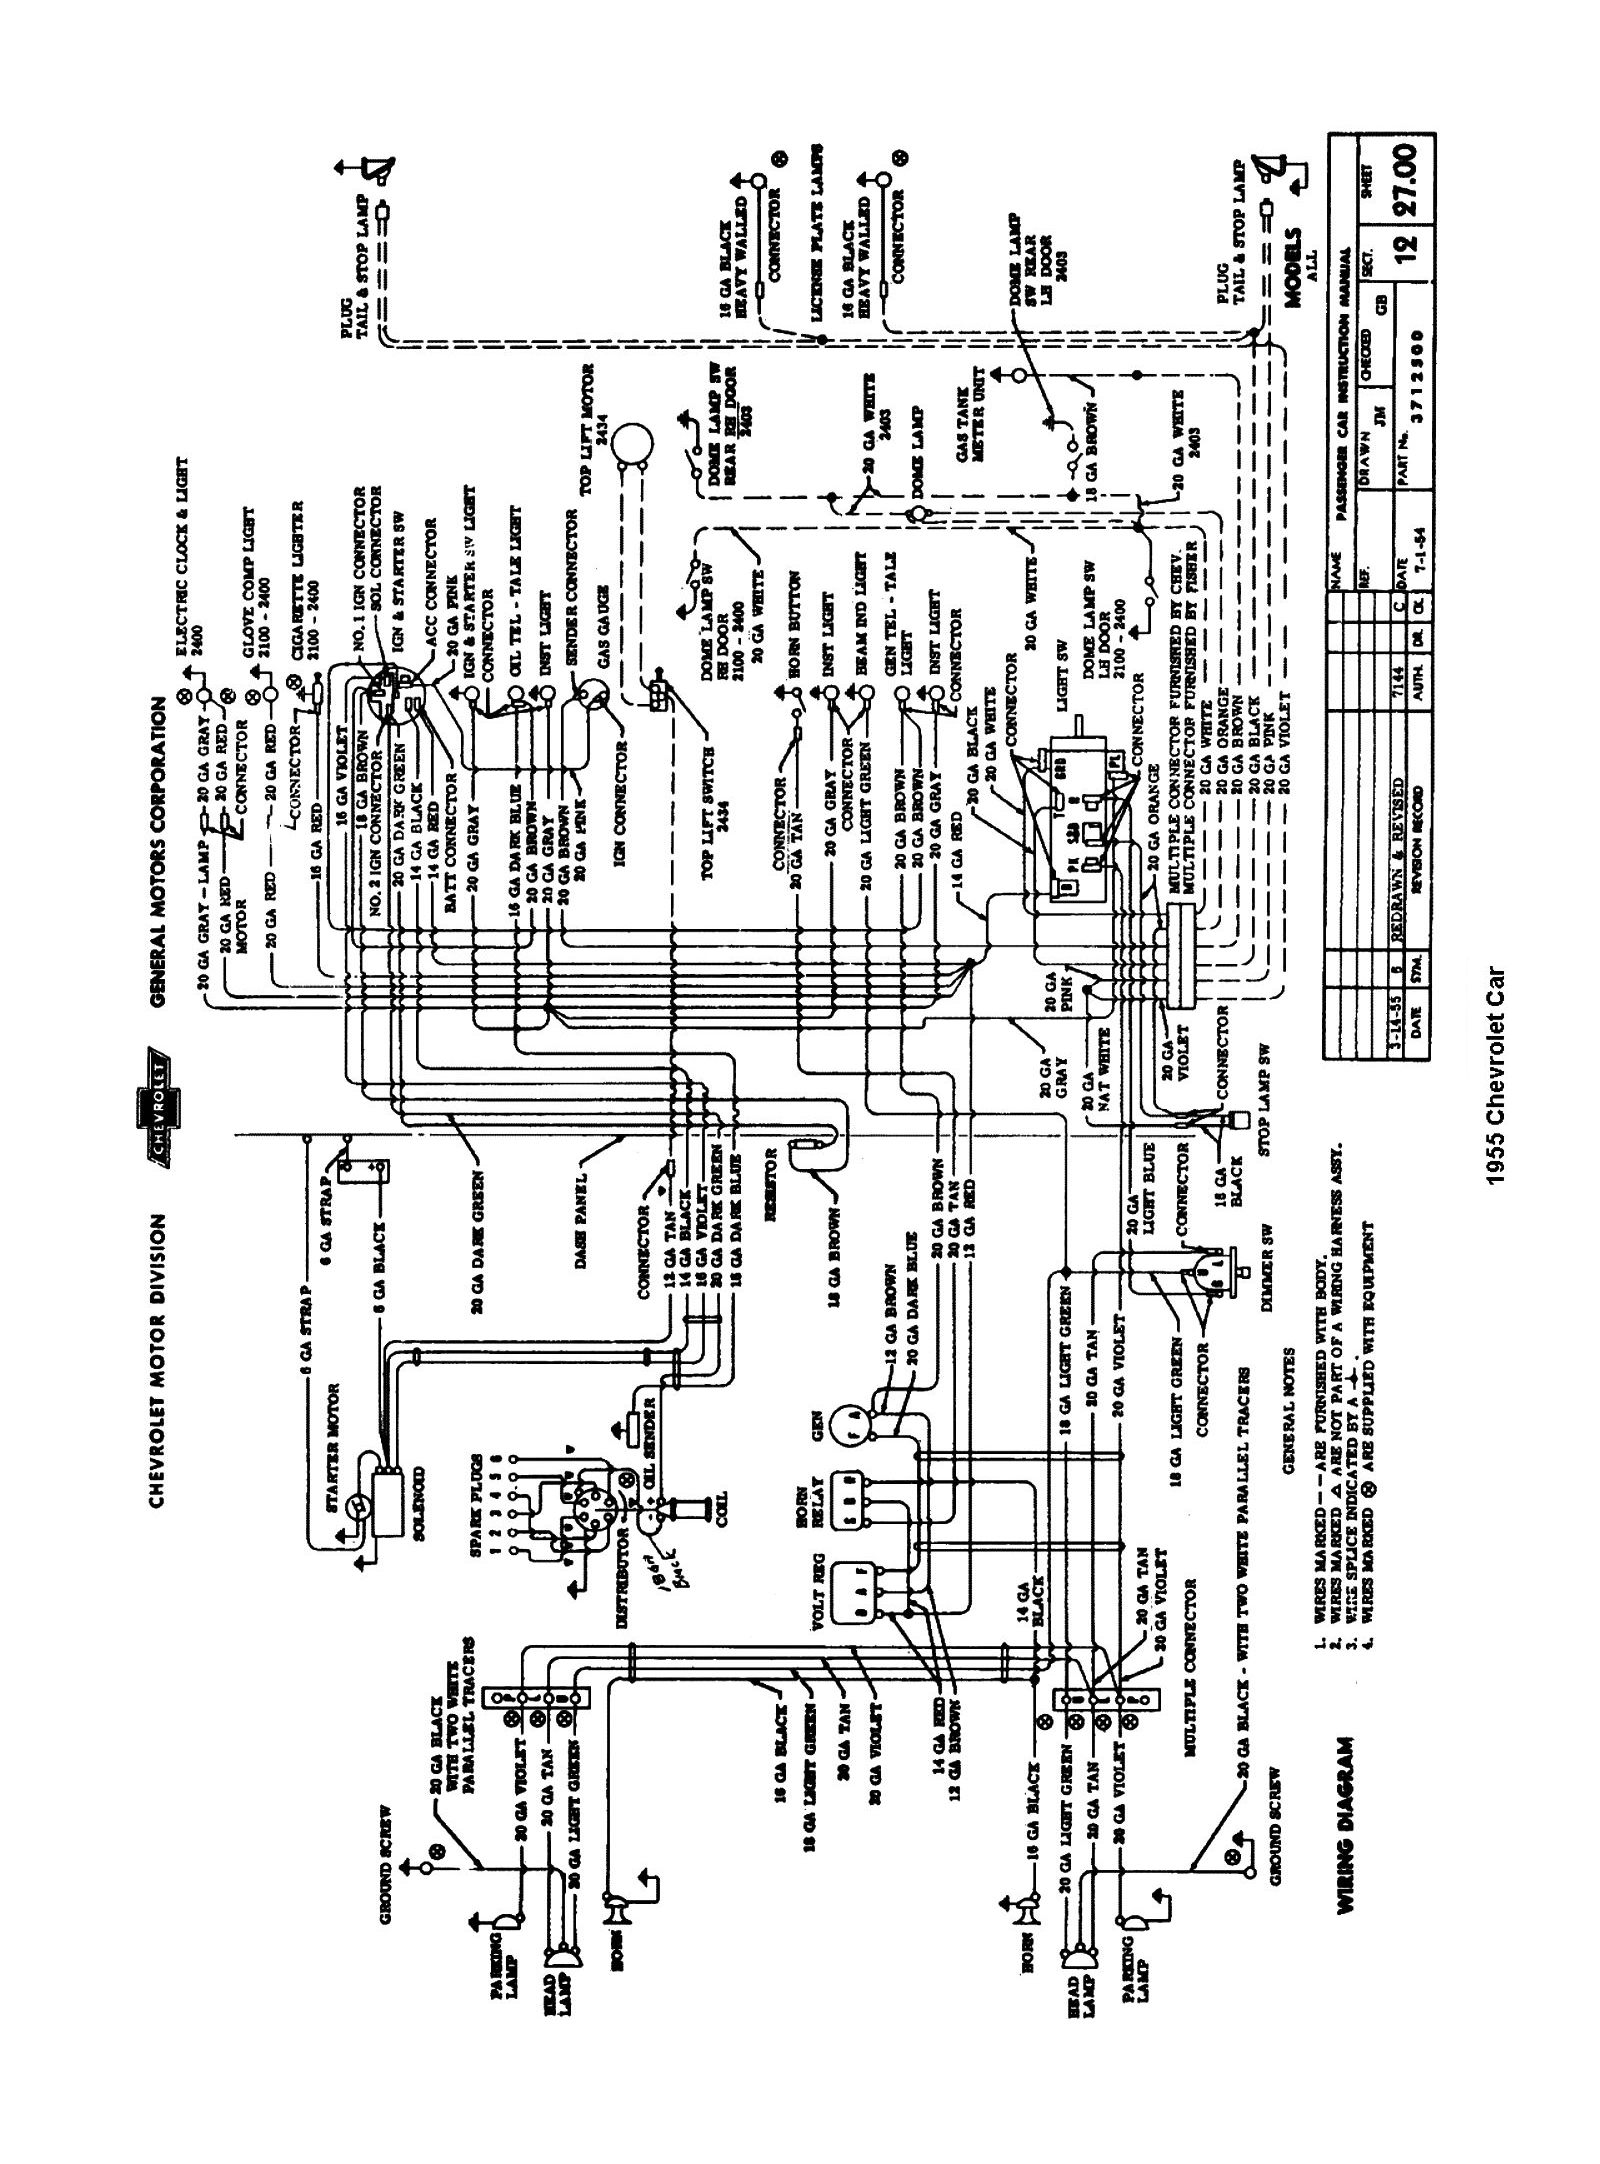 chevy wiring diagrams rh chevy oldcarmanualproject com GMC Truck Electrical Wiring Diagrams 1951 Chevy Truck Wiring Diagram